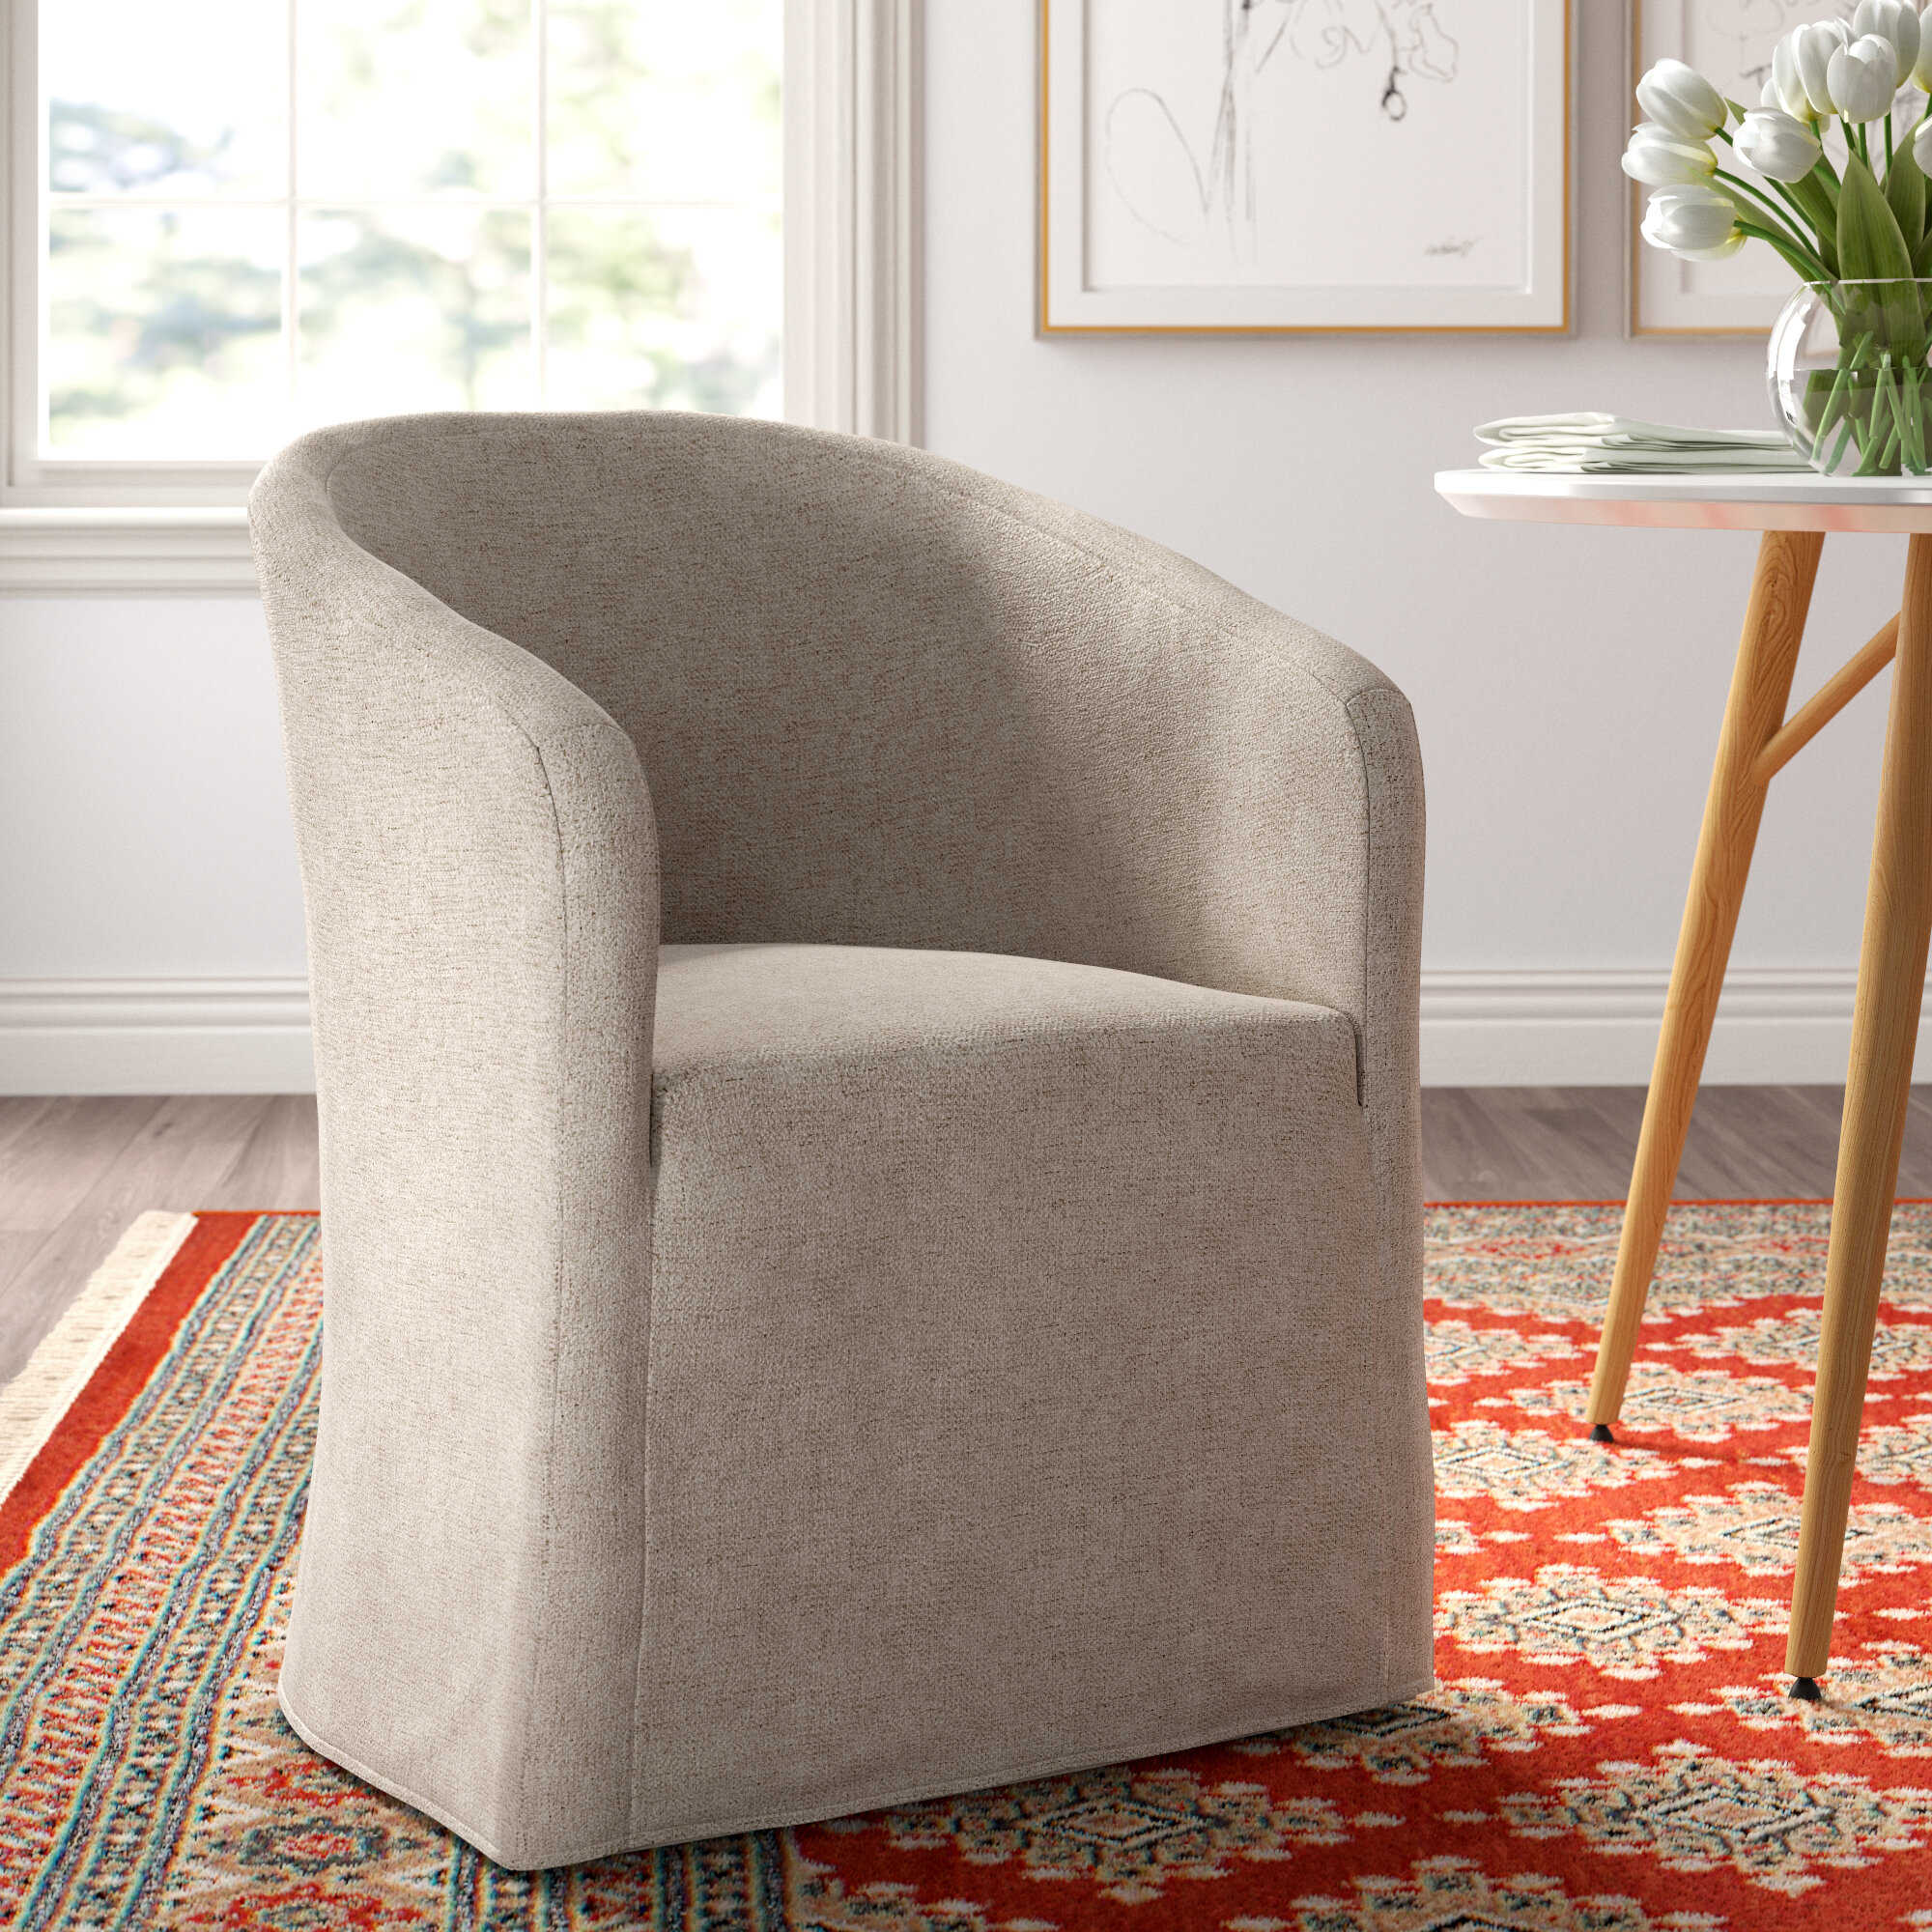 Ashton Upholstered Wingback Arm Chair In Beige Reviews Joss Main